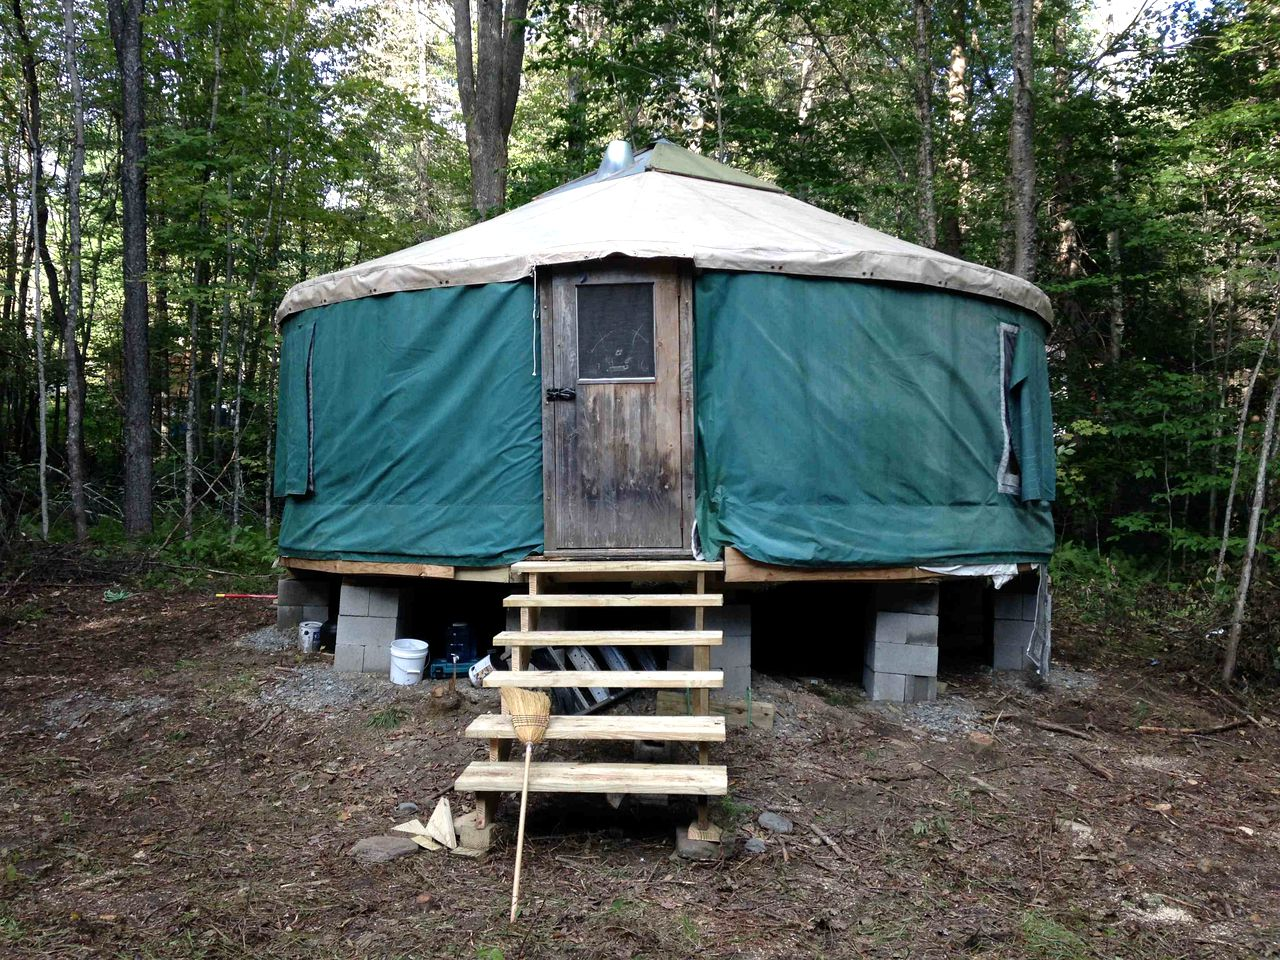 Yurt For Luxury Camping Vermont Vacation Rentals They are rented together as. luxury camping in cozy yurt in scenic vermont